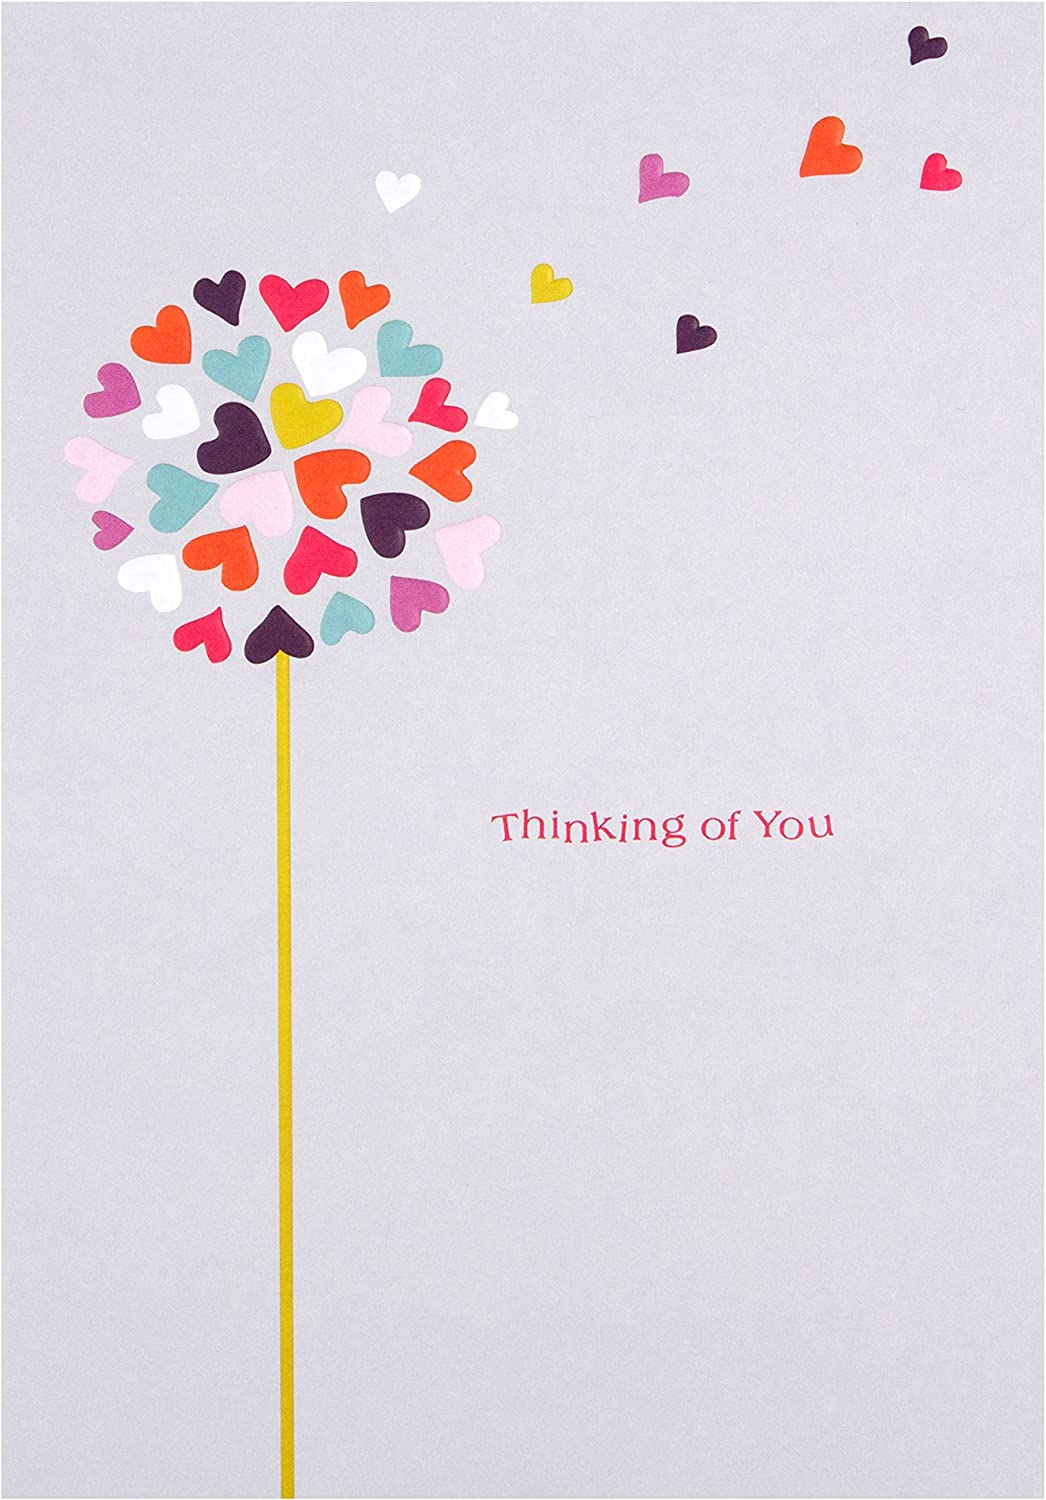 Mental Health Support//Thinking of You Card from Hallmark Contemporary Text Based State of Kind Design